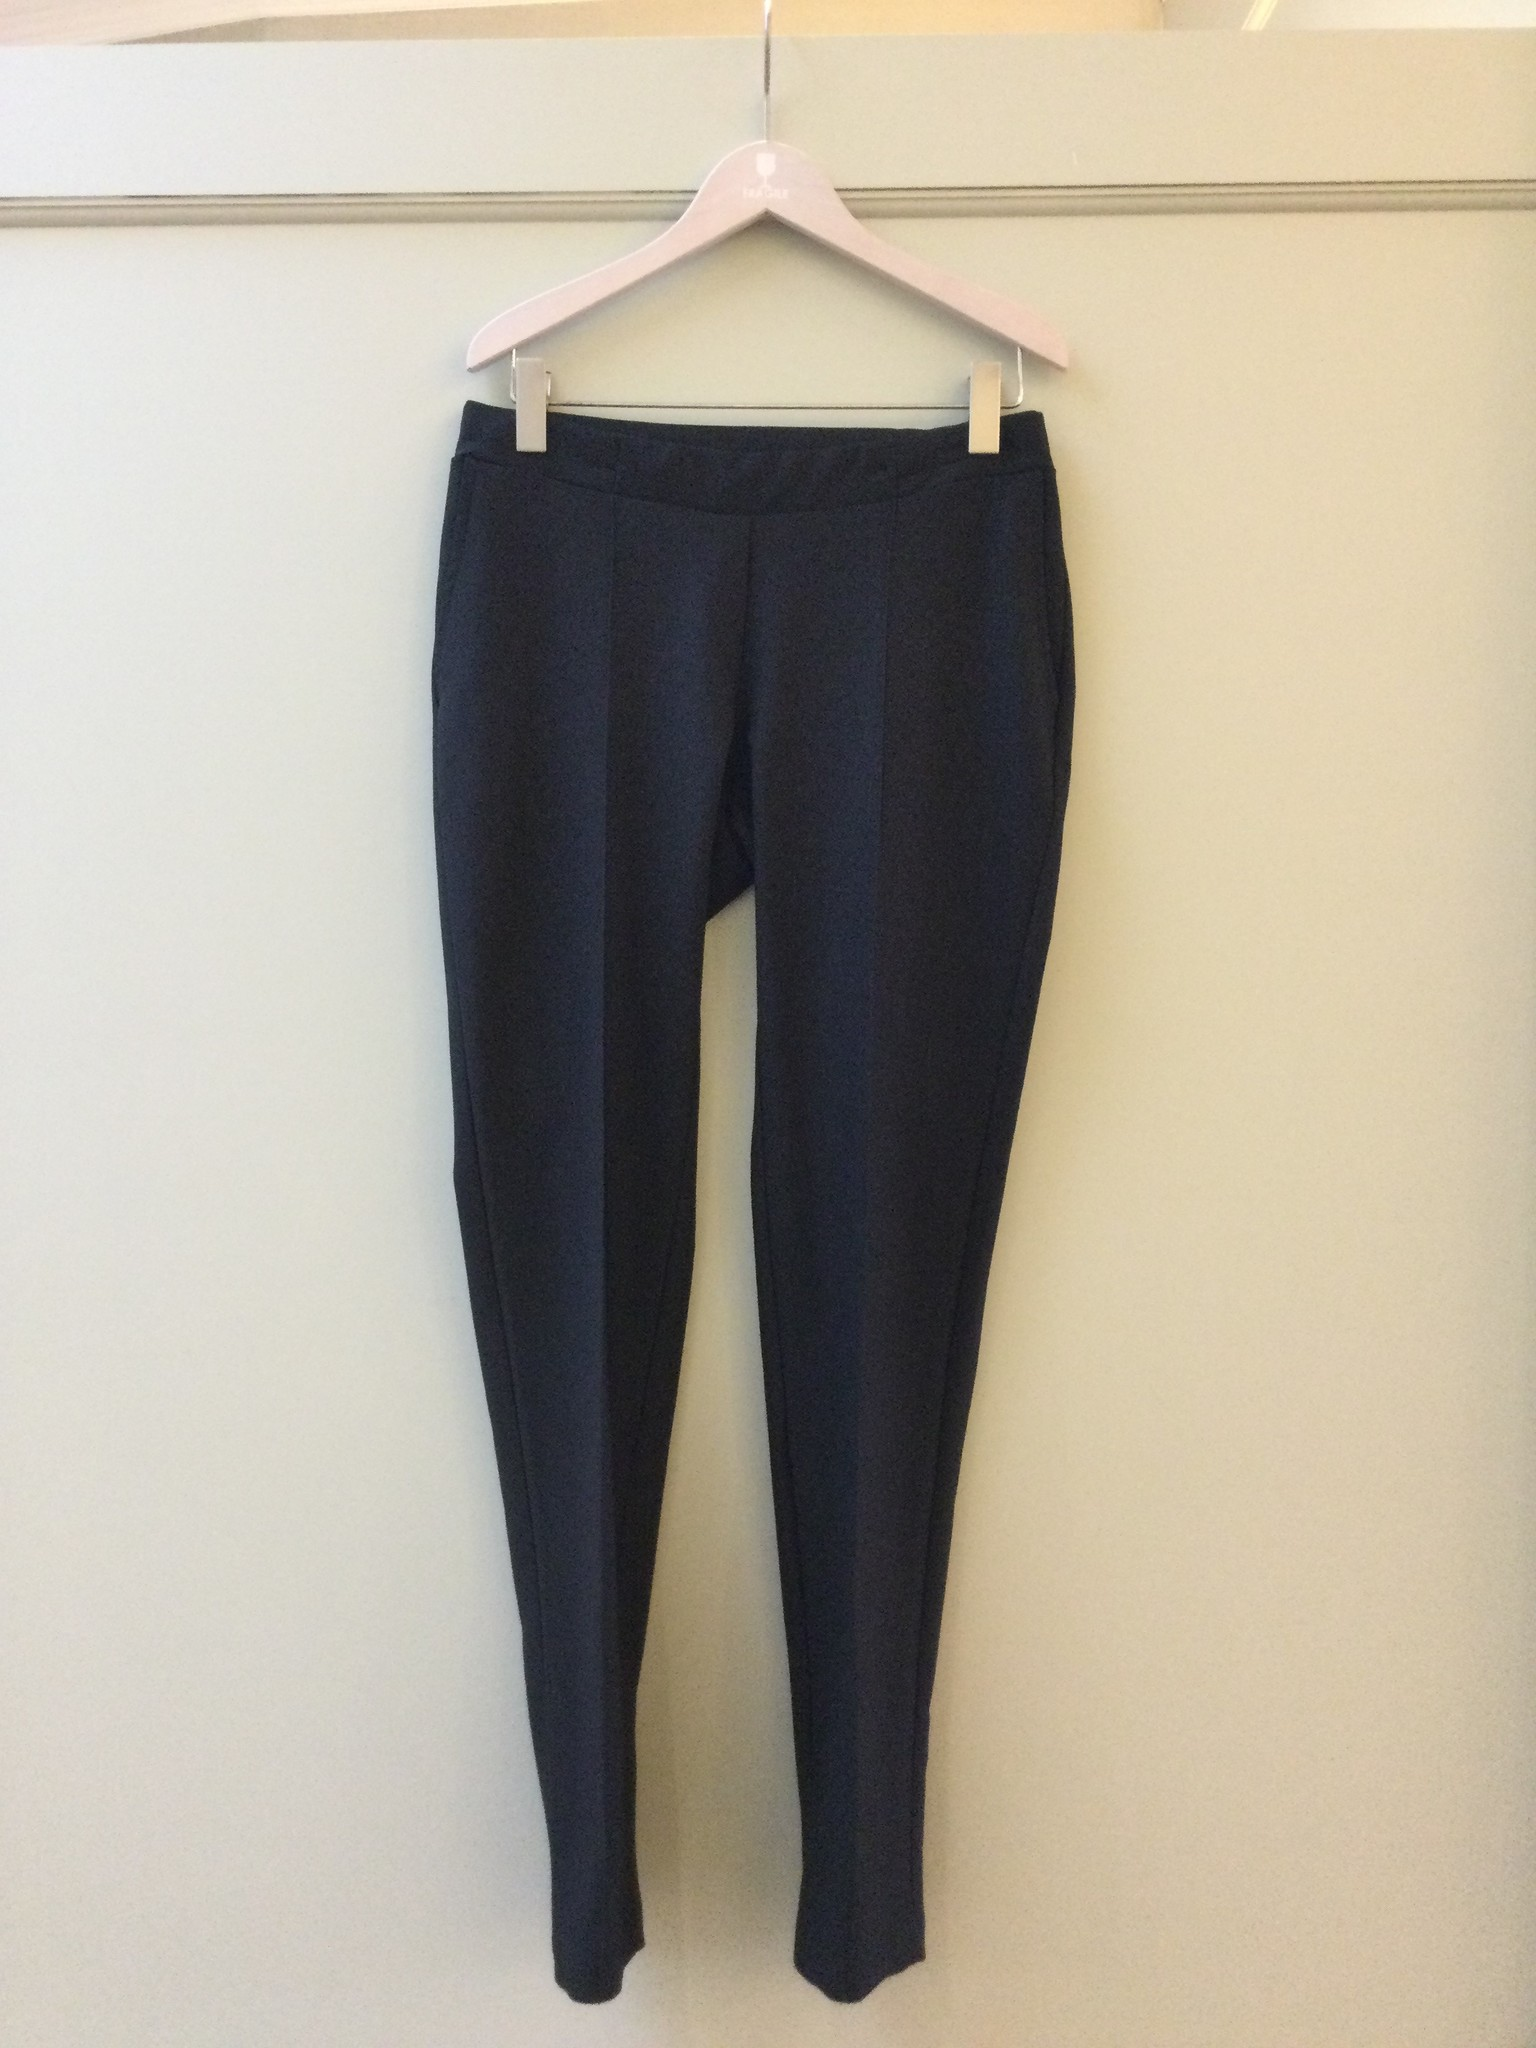 Easy trousers straight fit - black twill-1